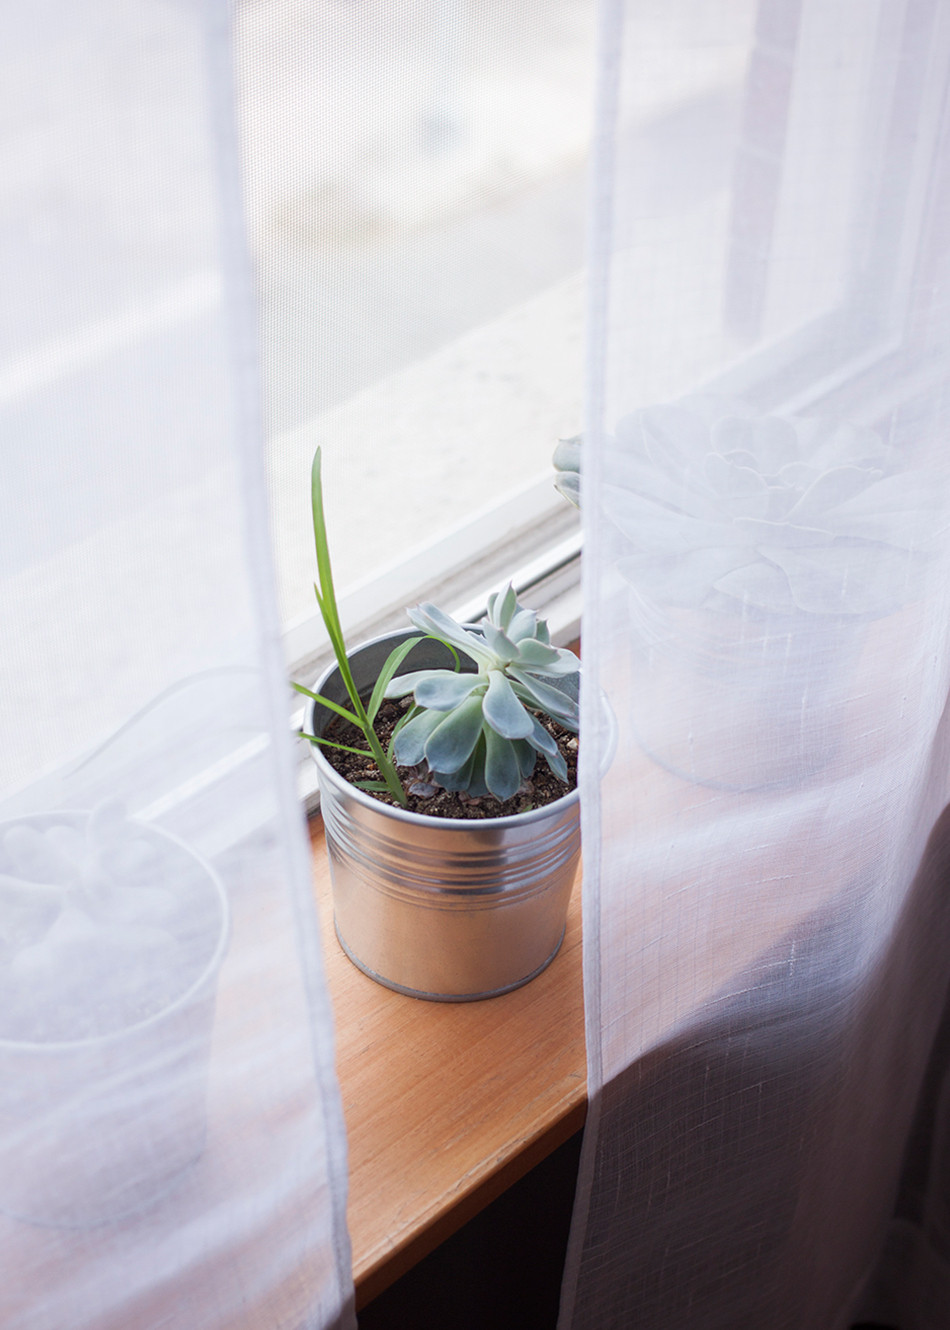 Behind gauzy linen drapery, succulents soak up the sunlight on a wood windowsill.